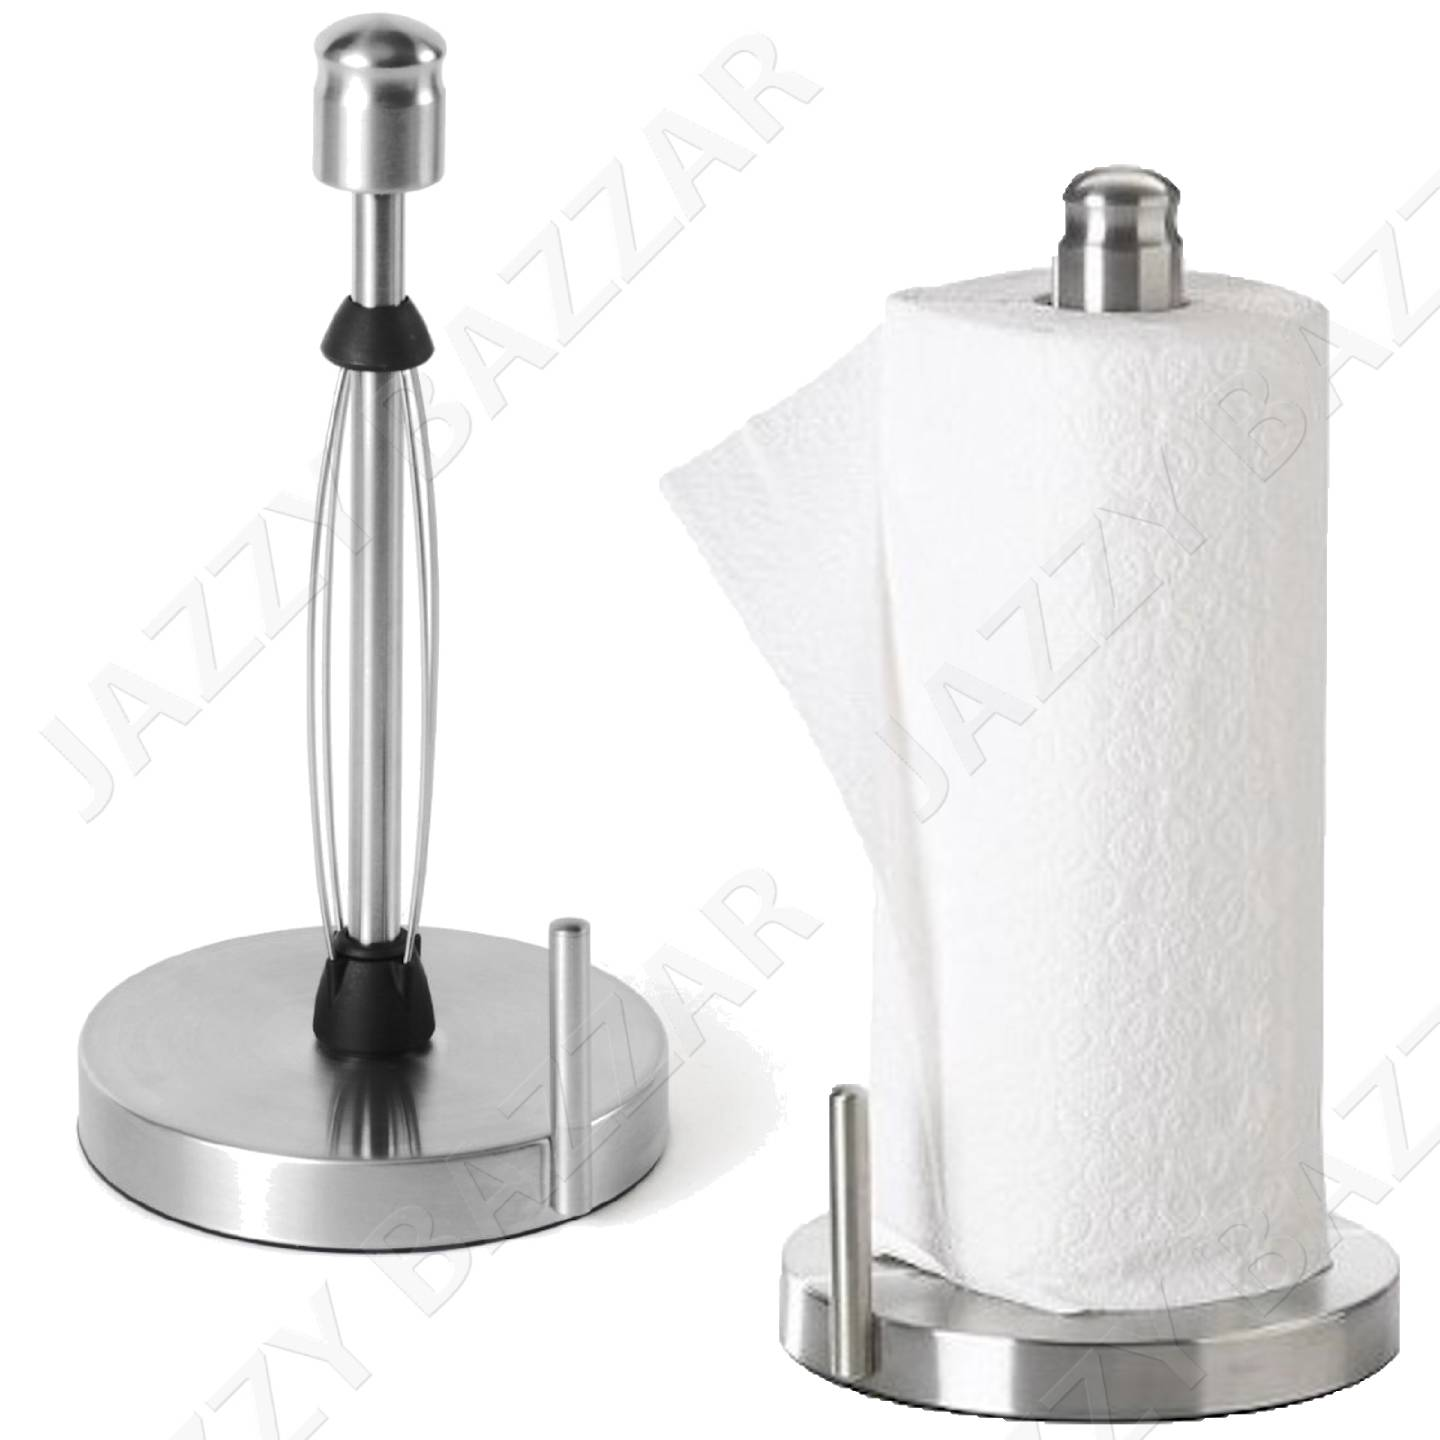 Countertop Towel Ring Countertop Hand Towel Holder Guest Hand Towel Holder